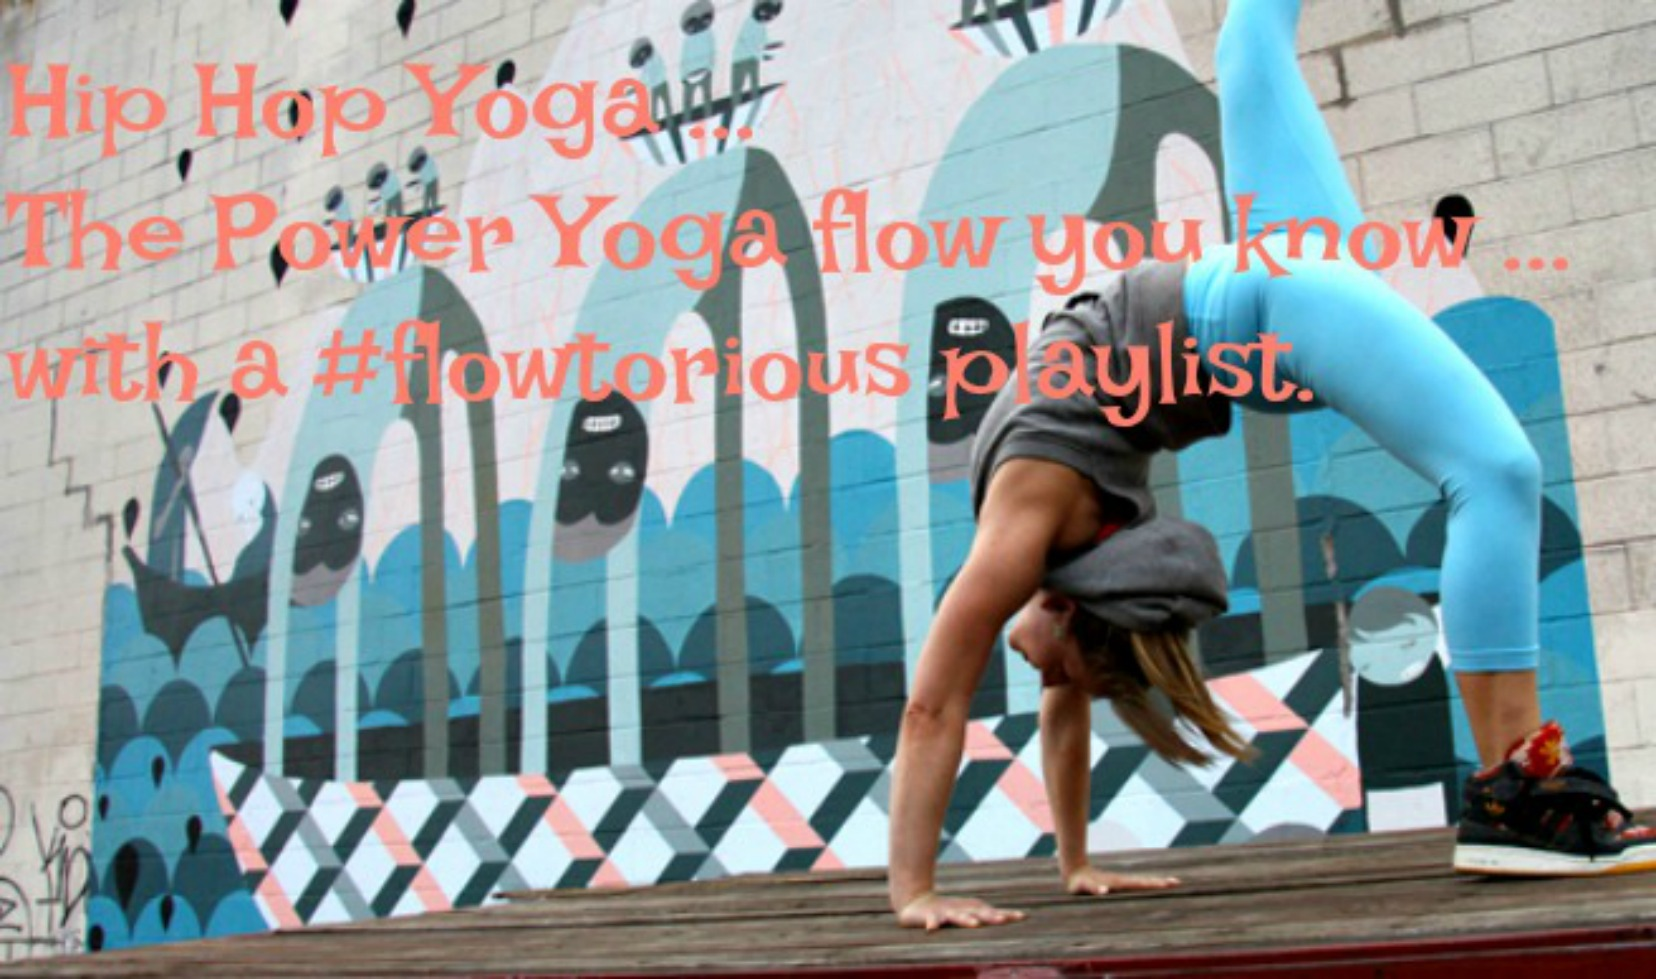 Hip Hop Yoga image blue and orange.jpg